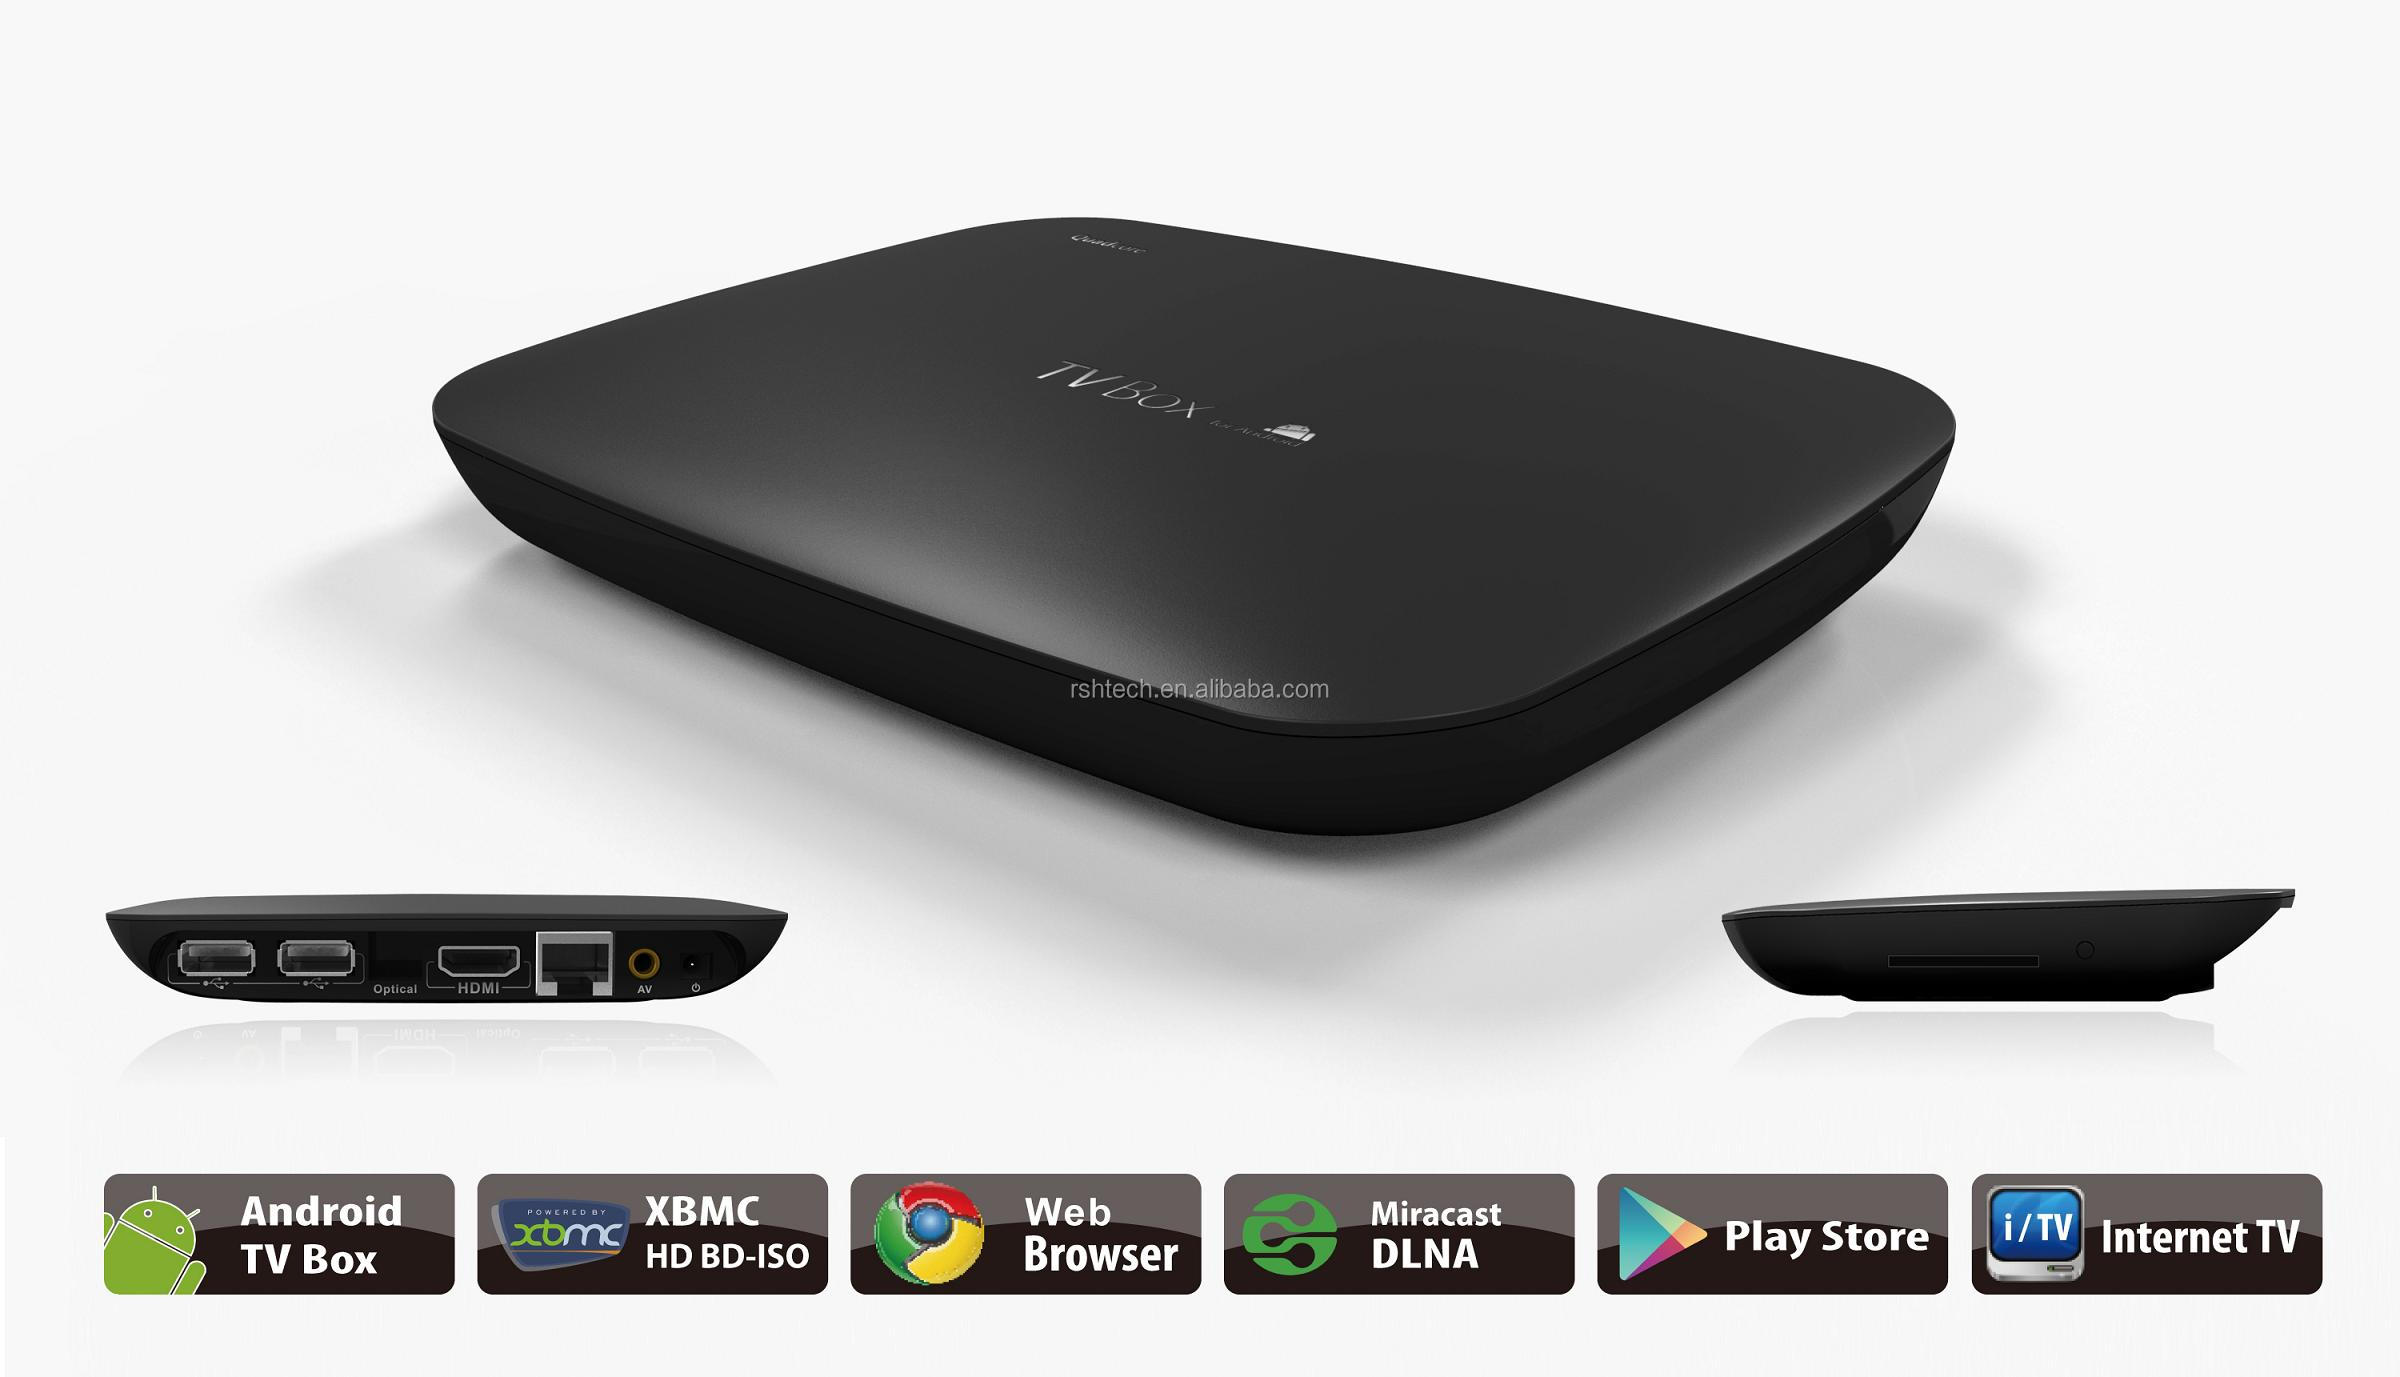 android smart media player dual core full hd streaming media player wifi internet browser XBMC 3d media player tv box